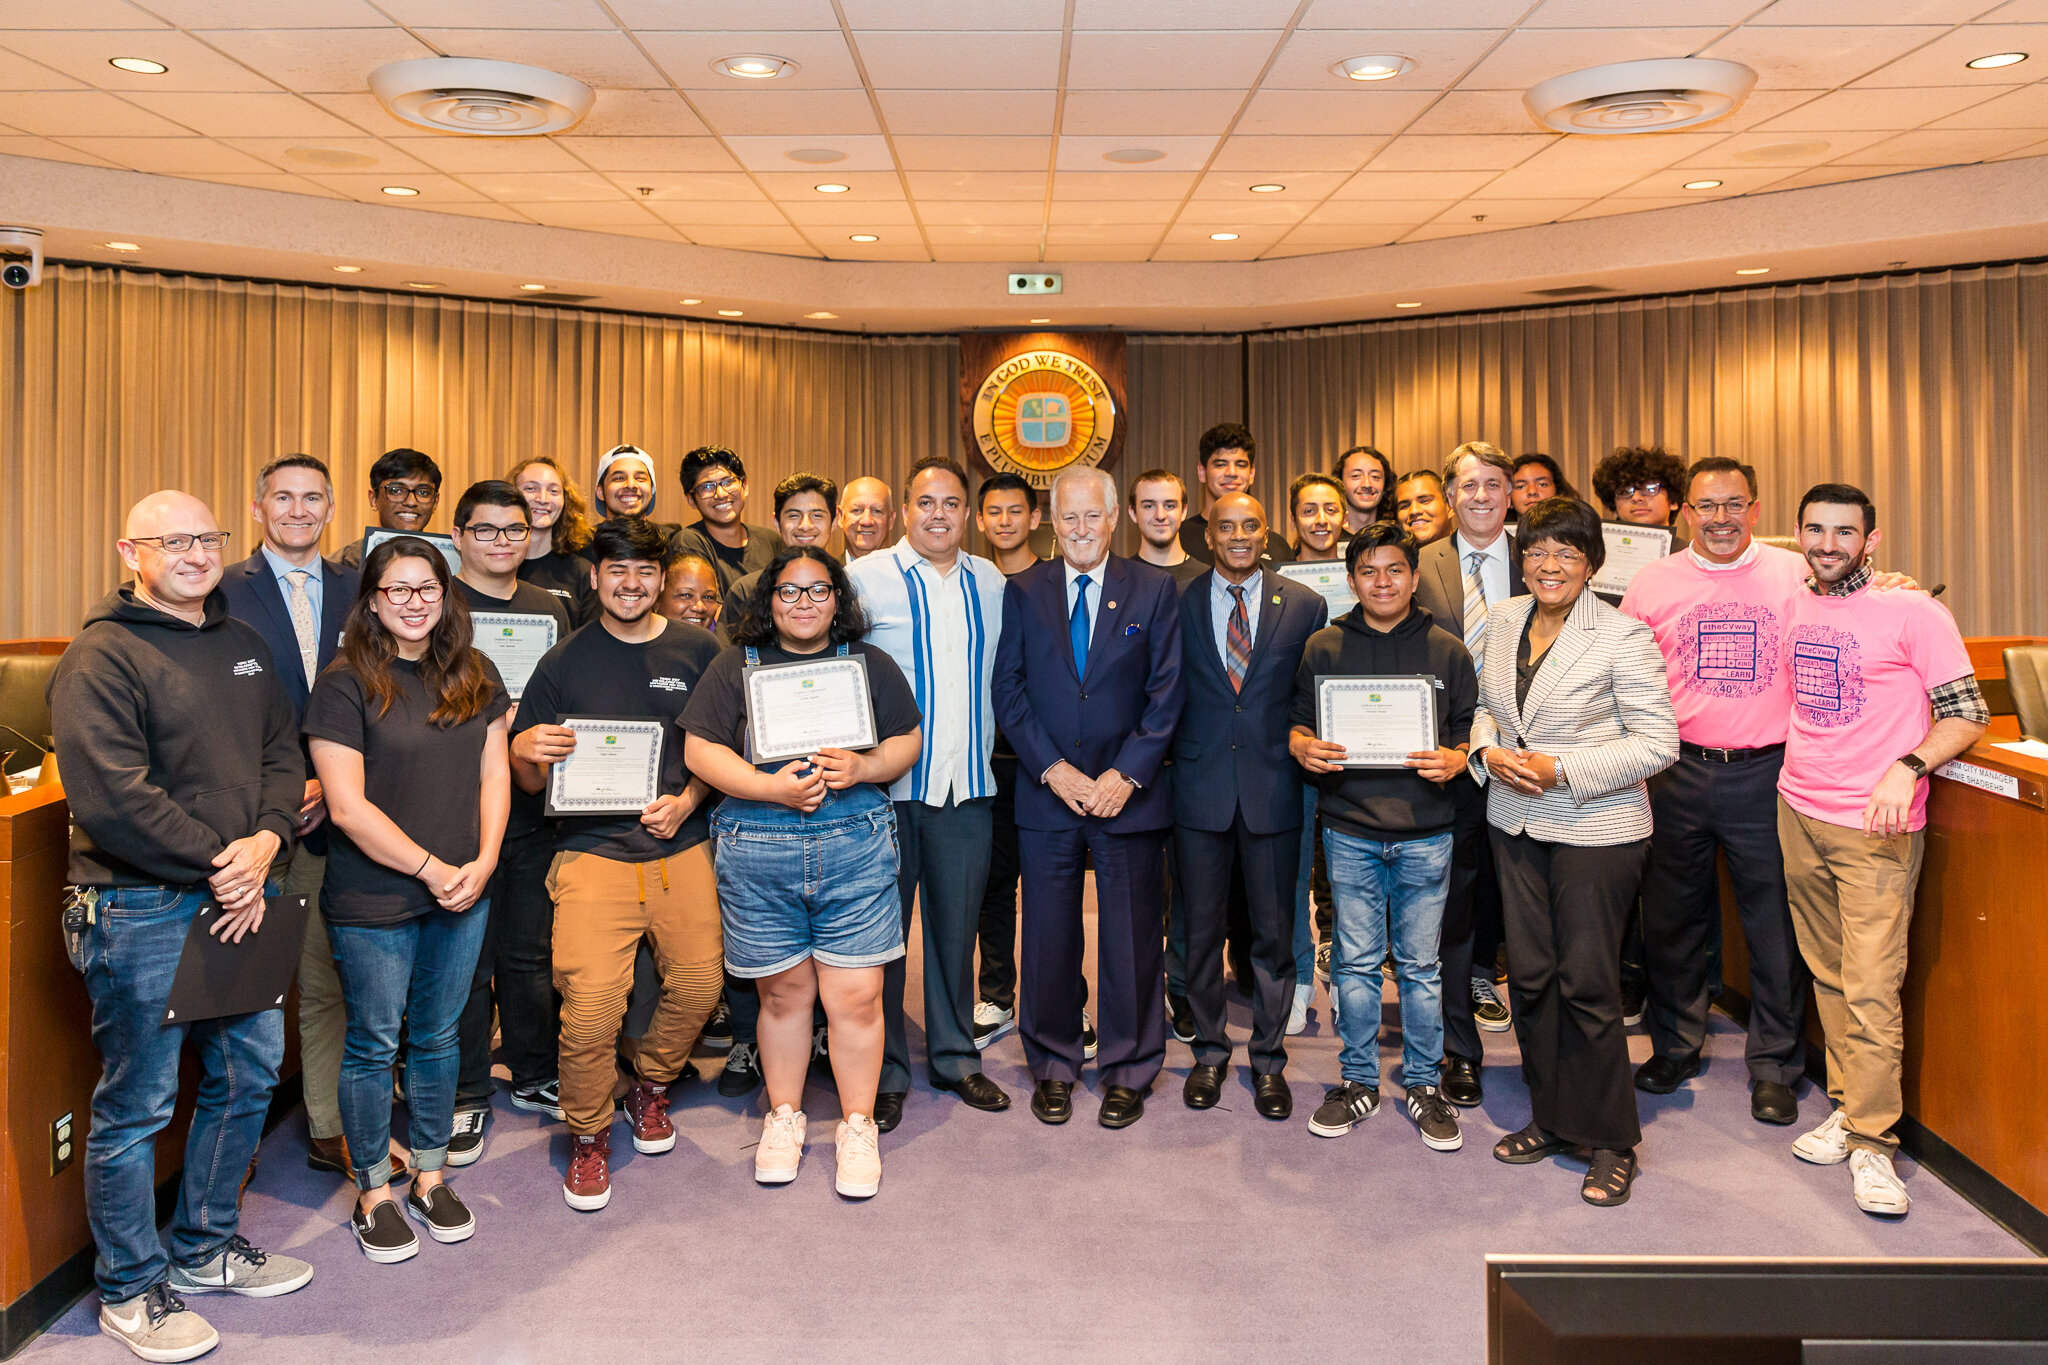 Council Members and Graduates of the Apprenticeship program